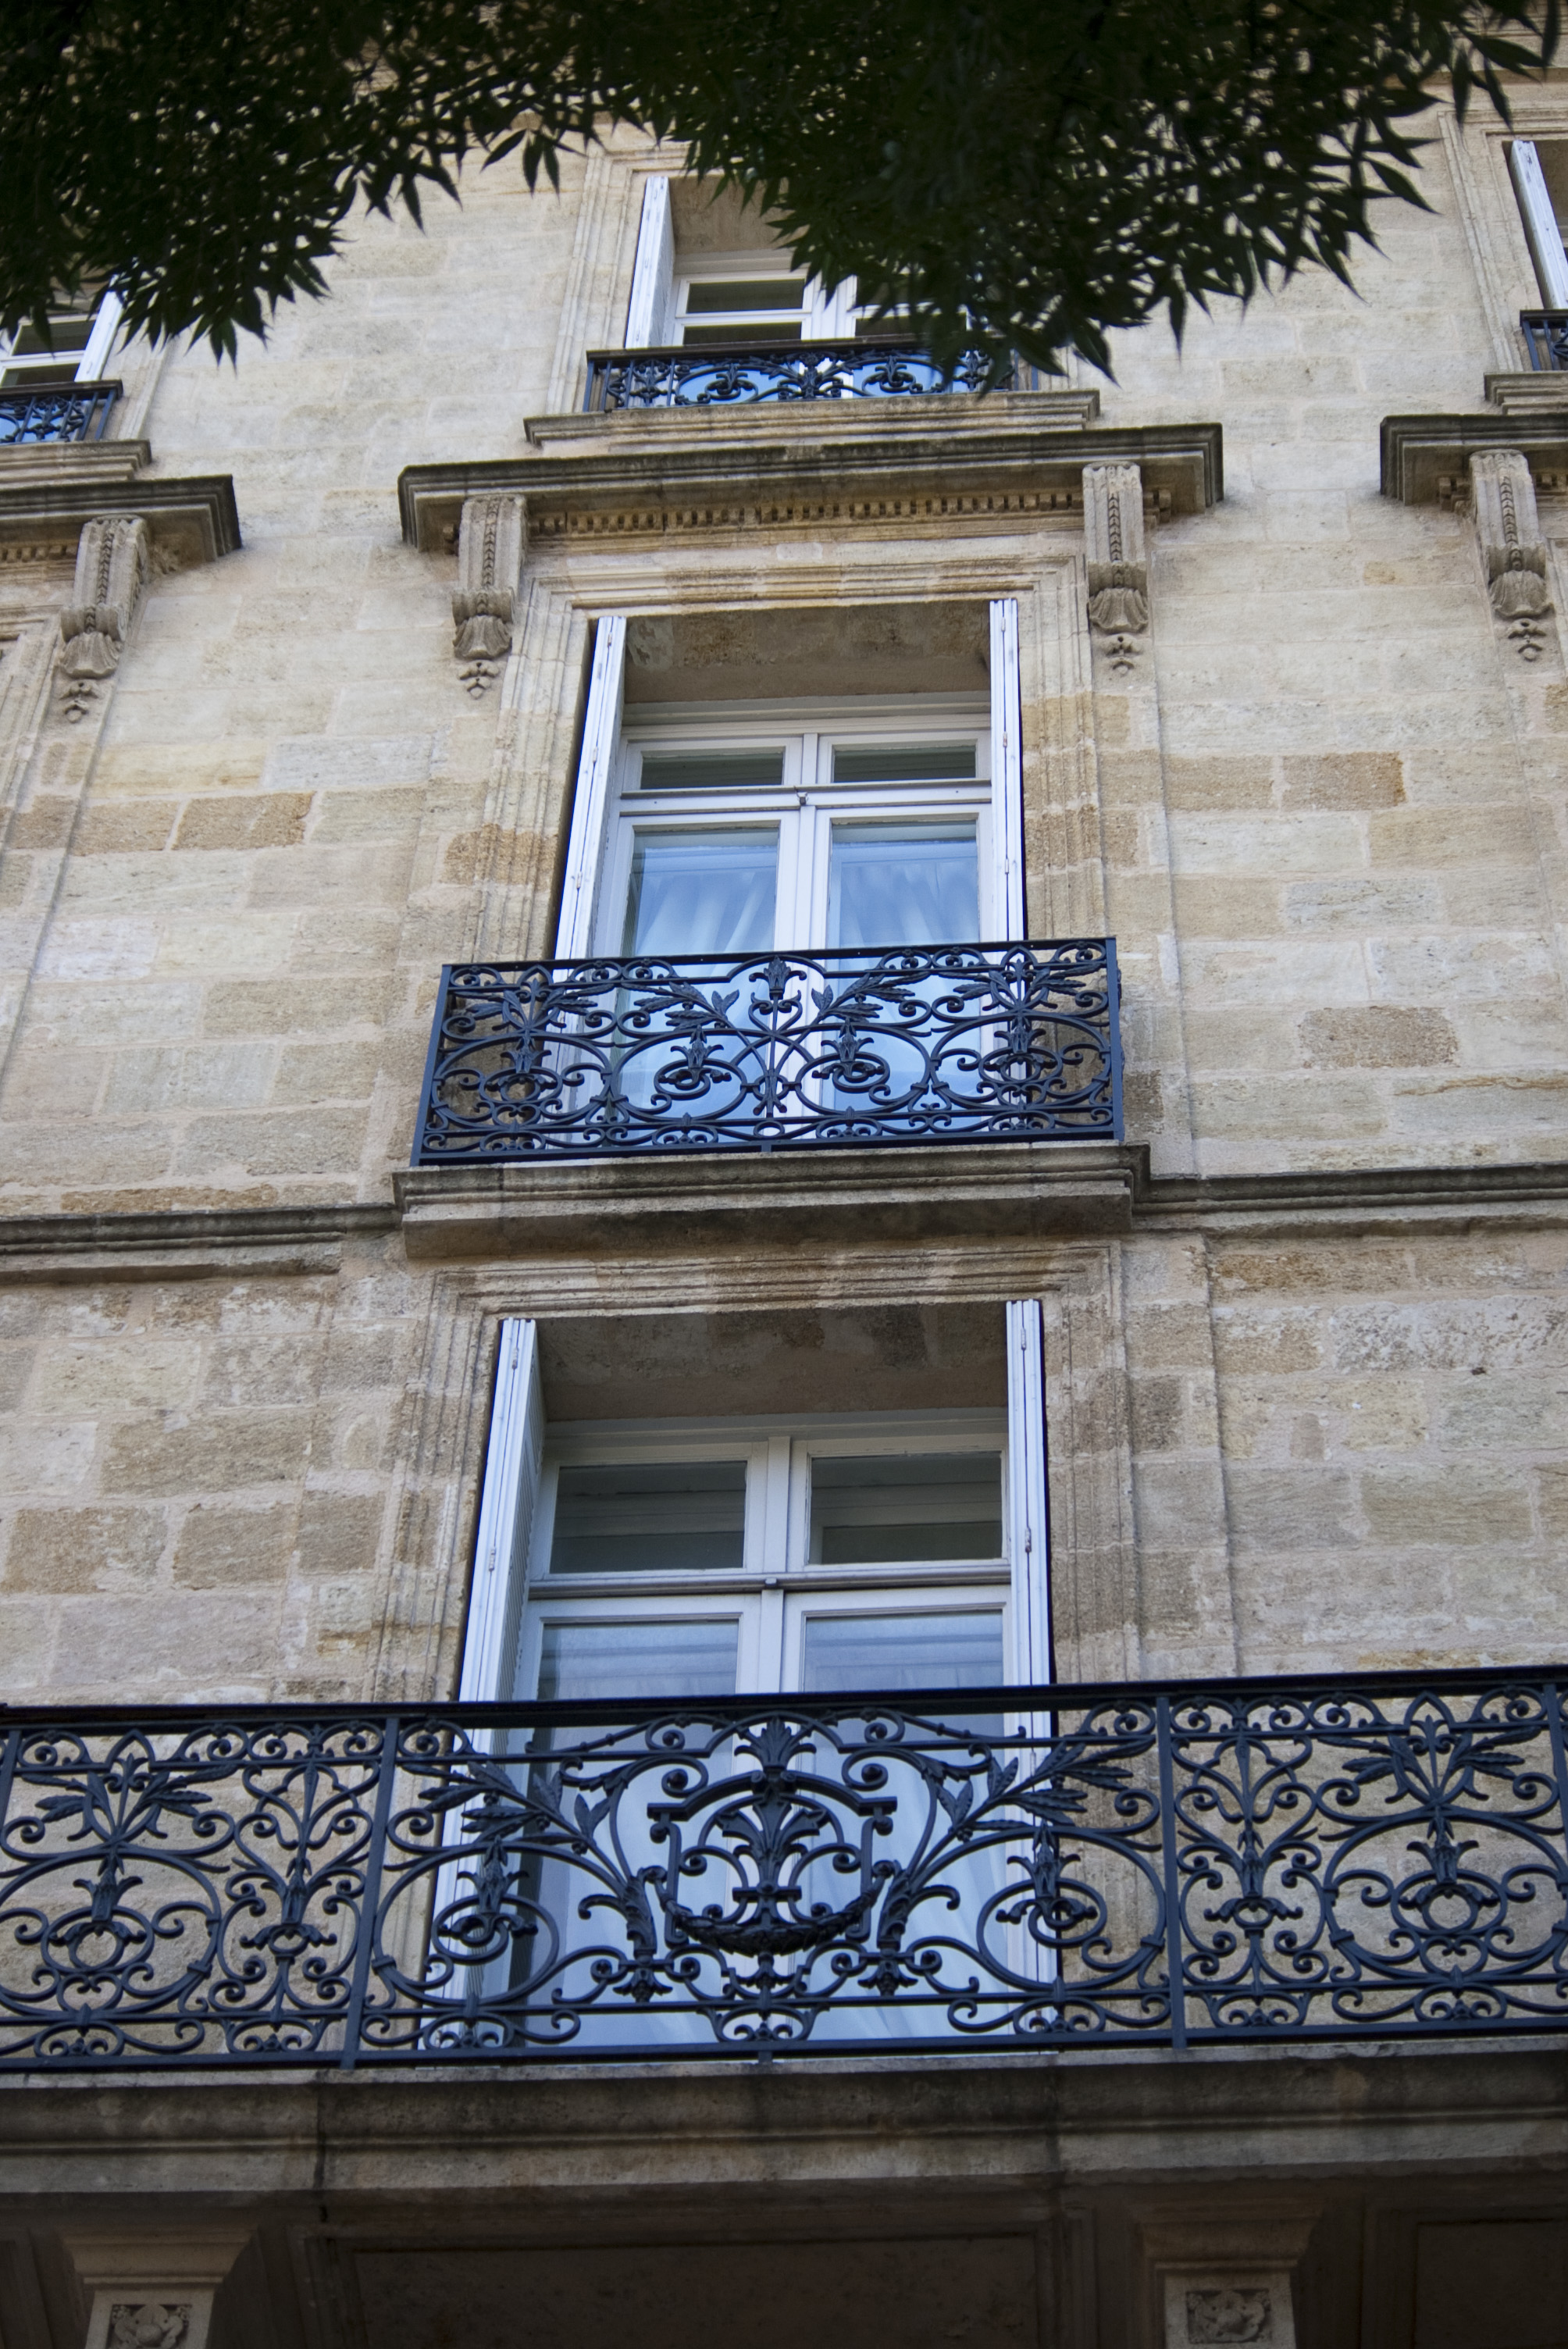 Free stock photo 2776 french windows freeimageslive for French balcony